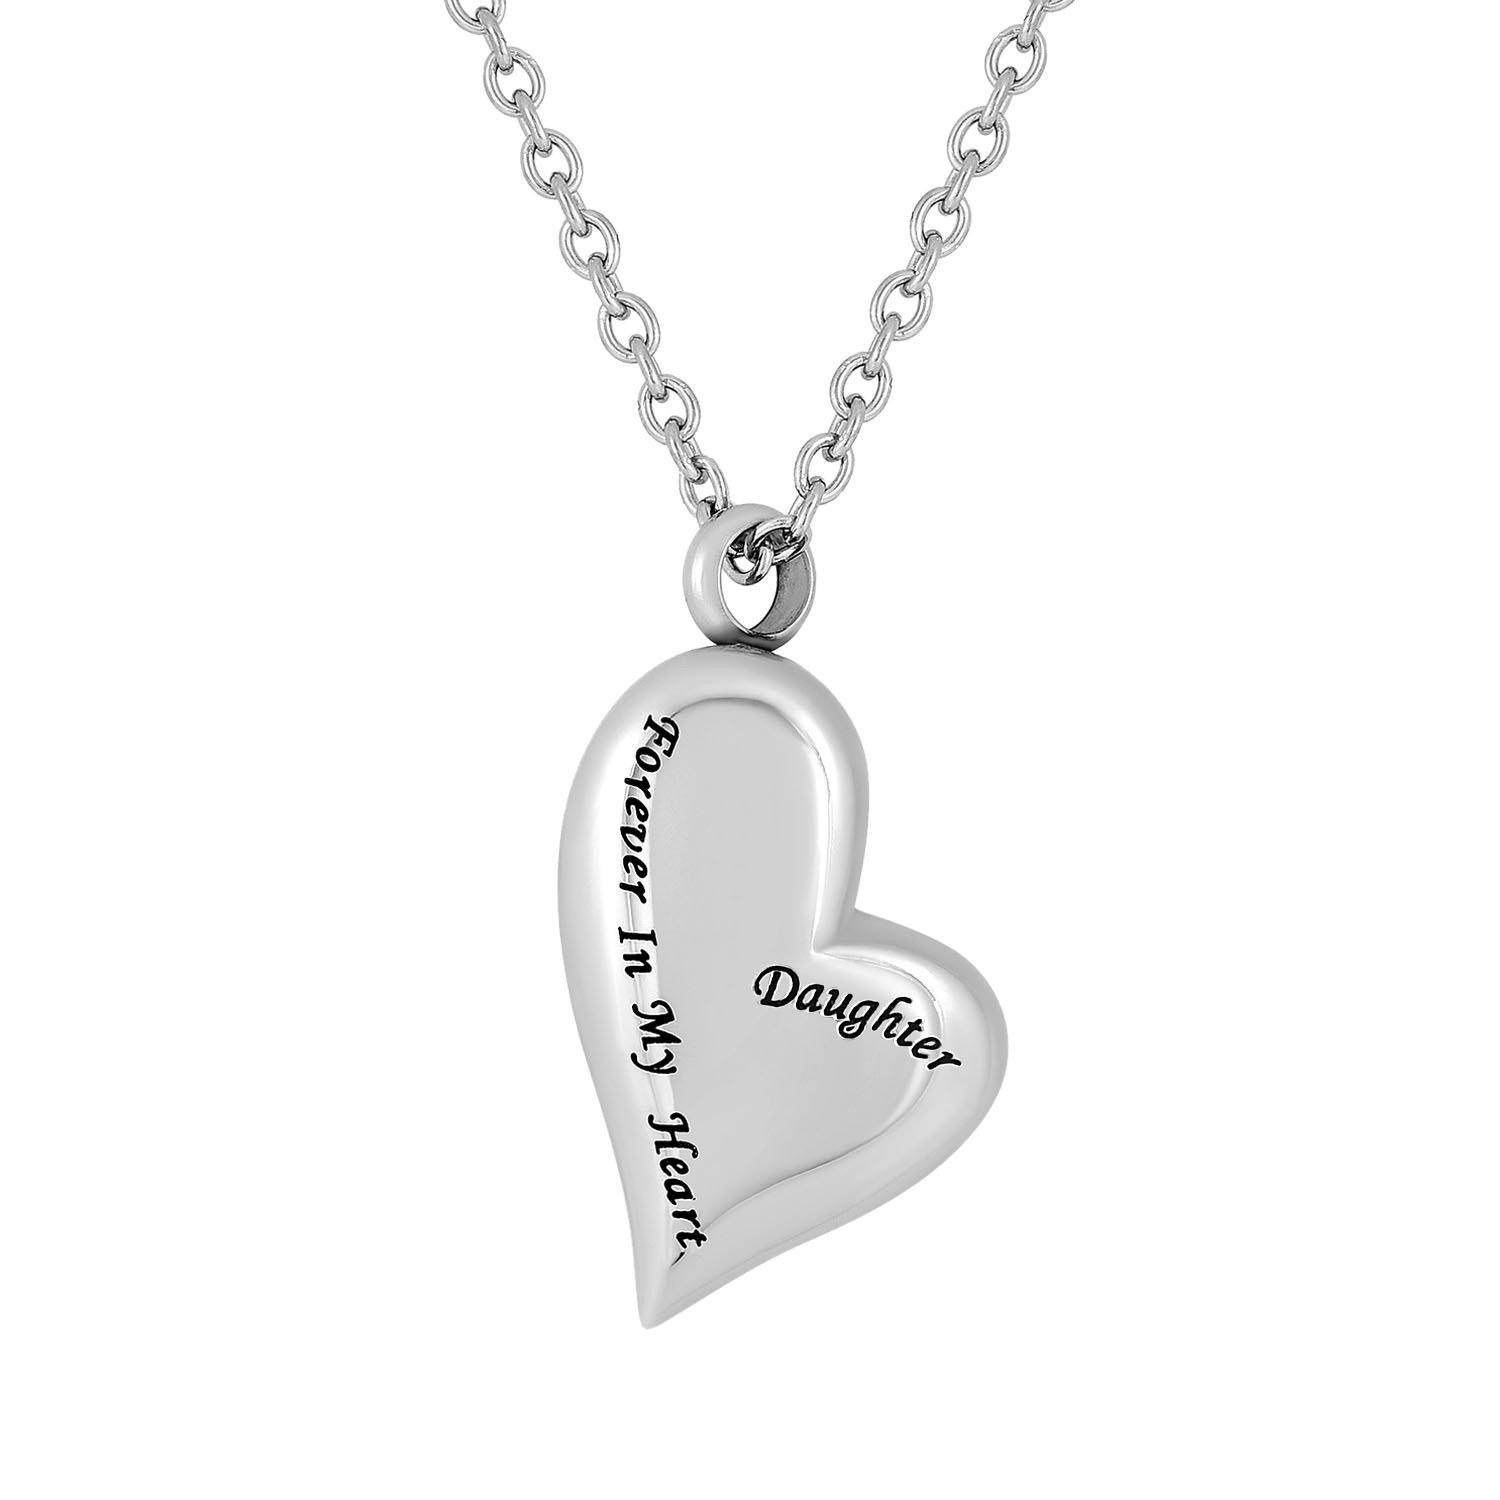 Cremation Jewelry Necklace for Ashes - Daughter Forever In My Heart